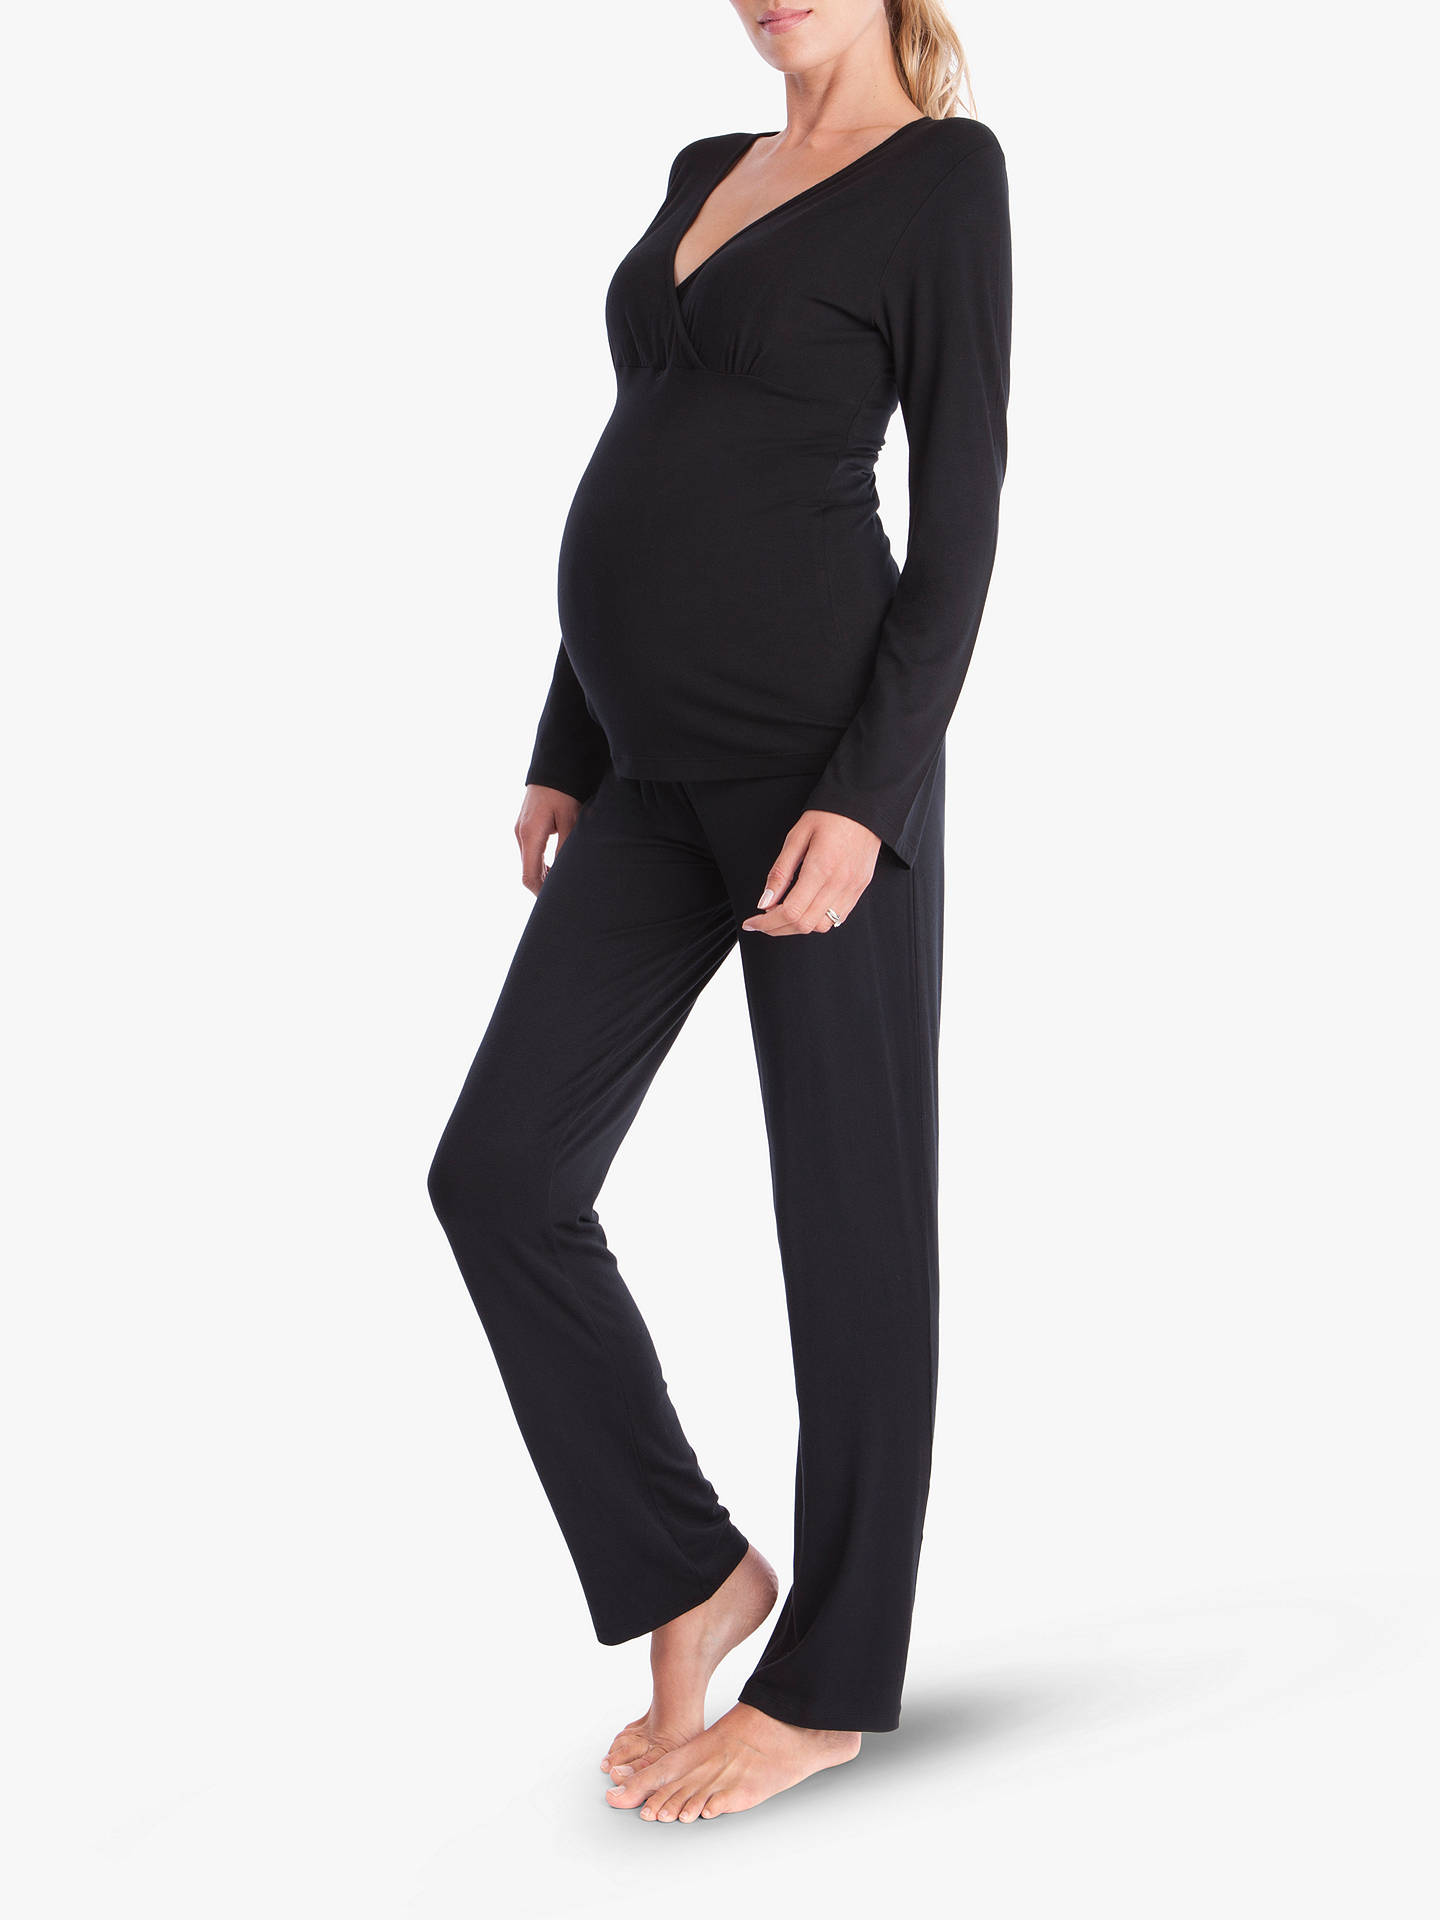 Buy Seraphine Camille Maternity Pyjamas, Black, S Online at johnlewis.com